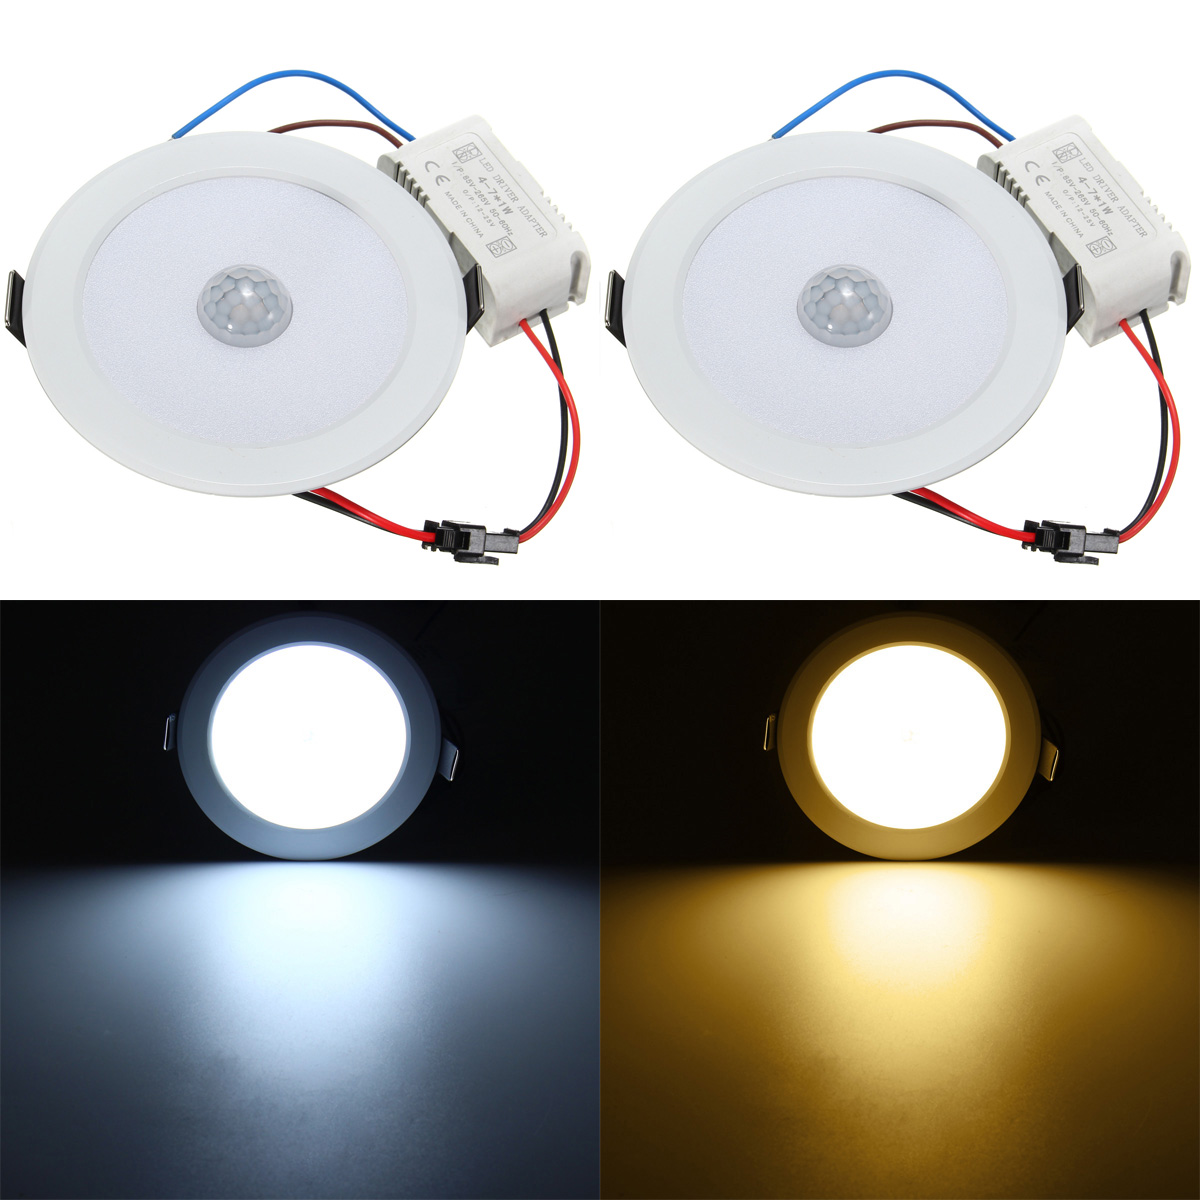 E27 House Motion Sensor Ceiling Light 5730 SMD AC 85-265V LED Night Lamp Warm White Hallway Indoor Lighting jrled e27 12w 1000lm 3300k 60 smd 2835 led warm white horizontal lamp white silver ac 85 265v